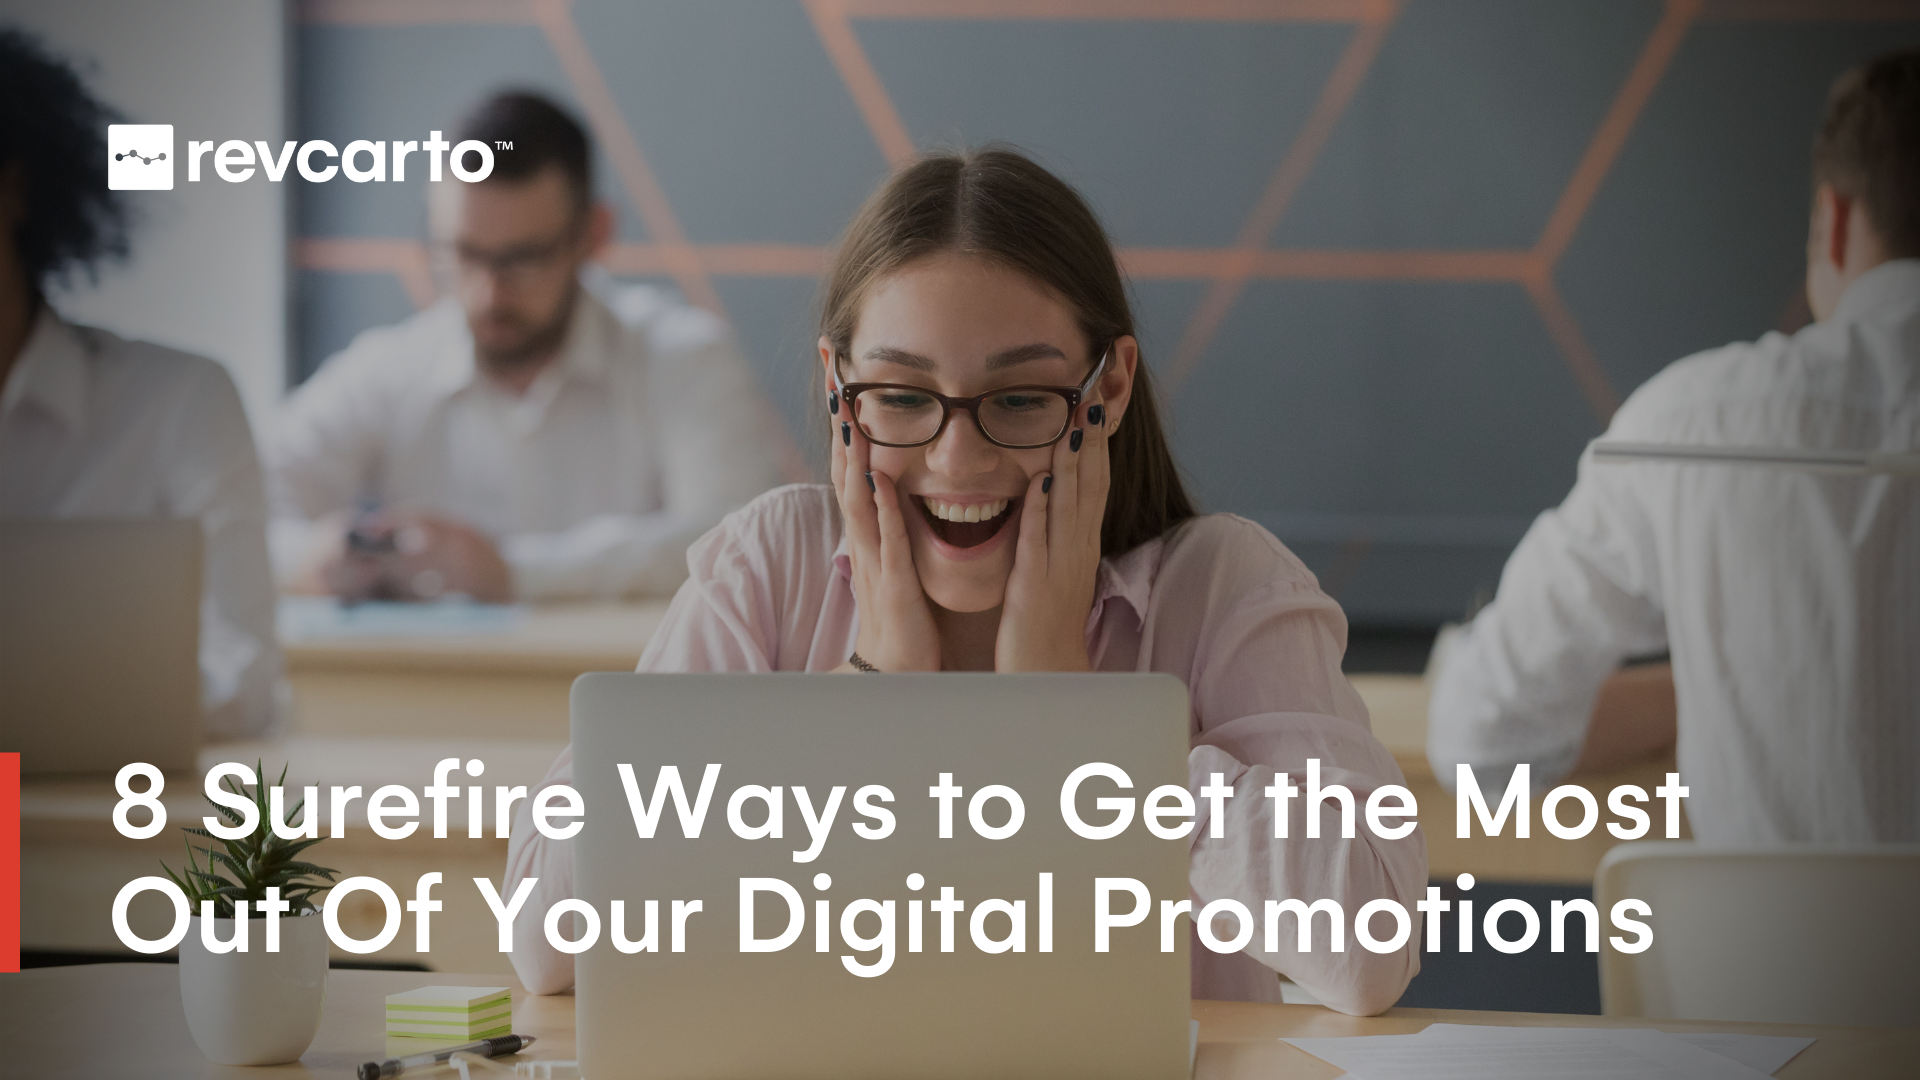 8 Surefire Ways to Get the Most Out of Your Digital Promotions